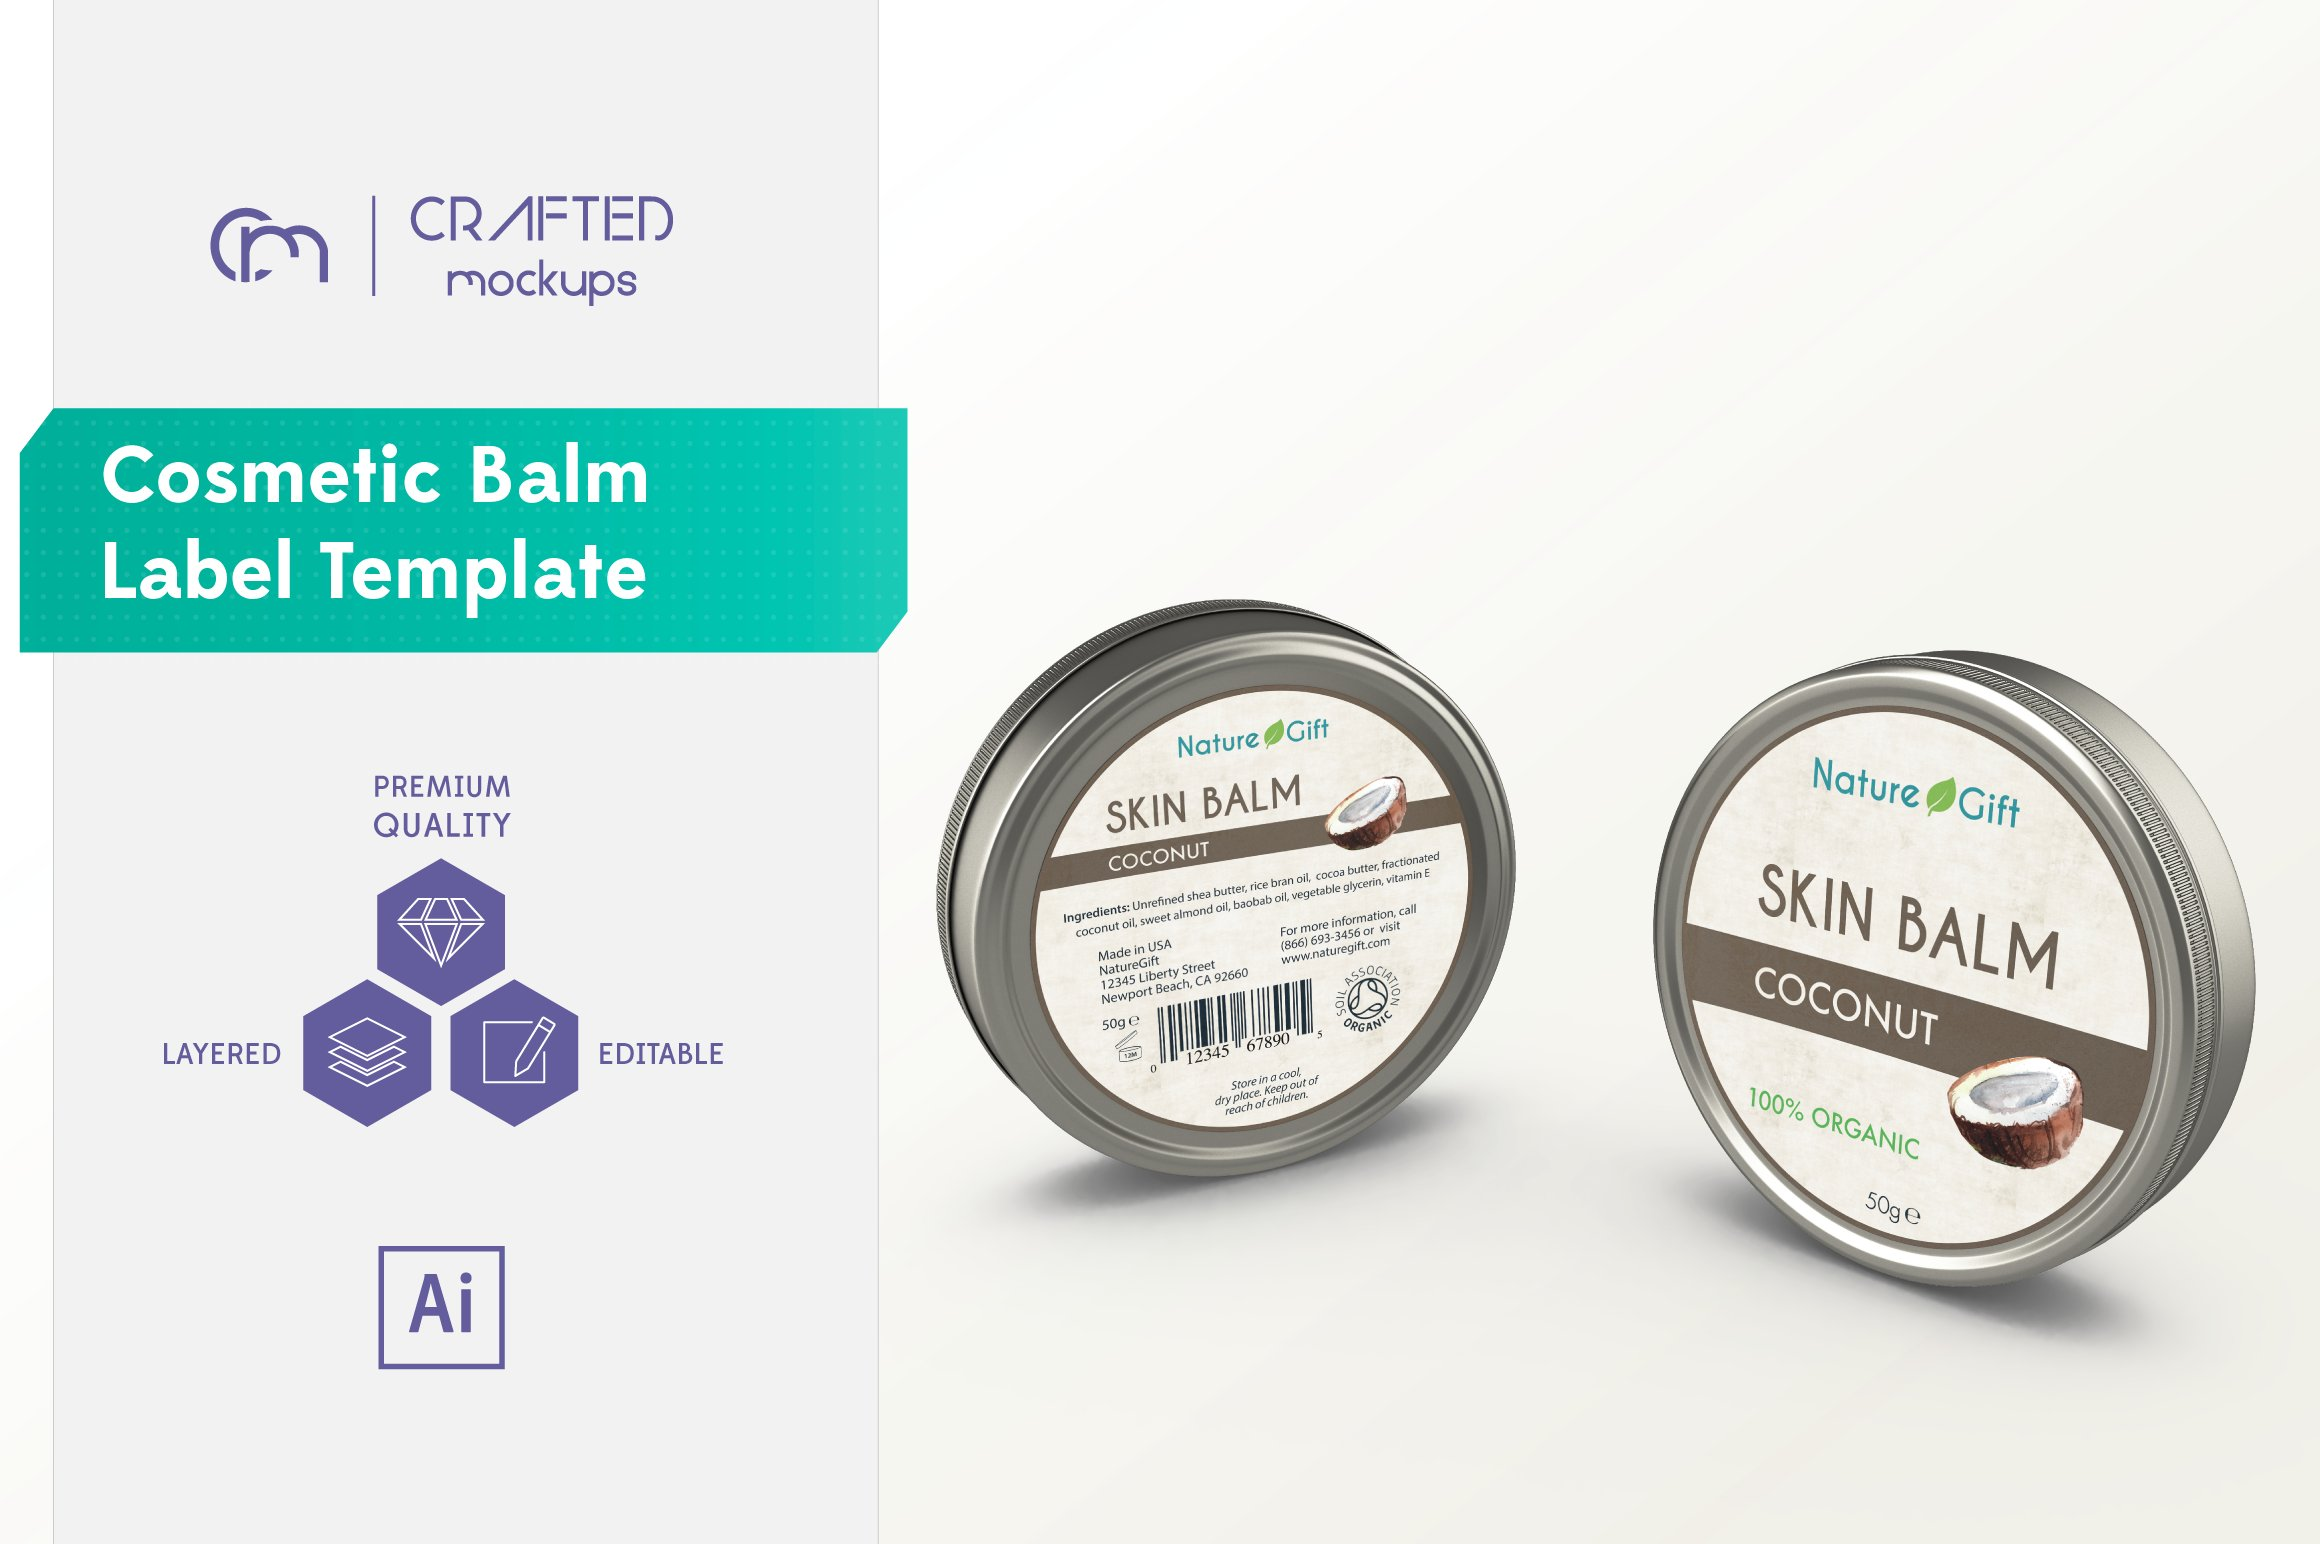 Cosmetic balm label template templates creative market for Cosmetic label templates